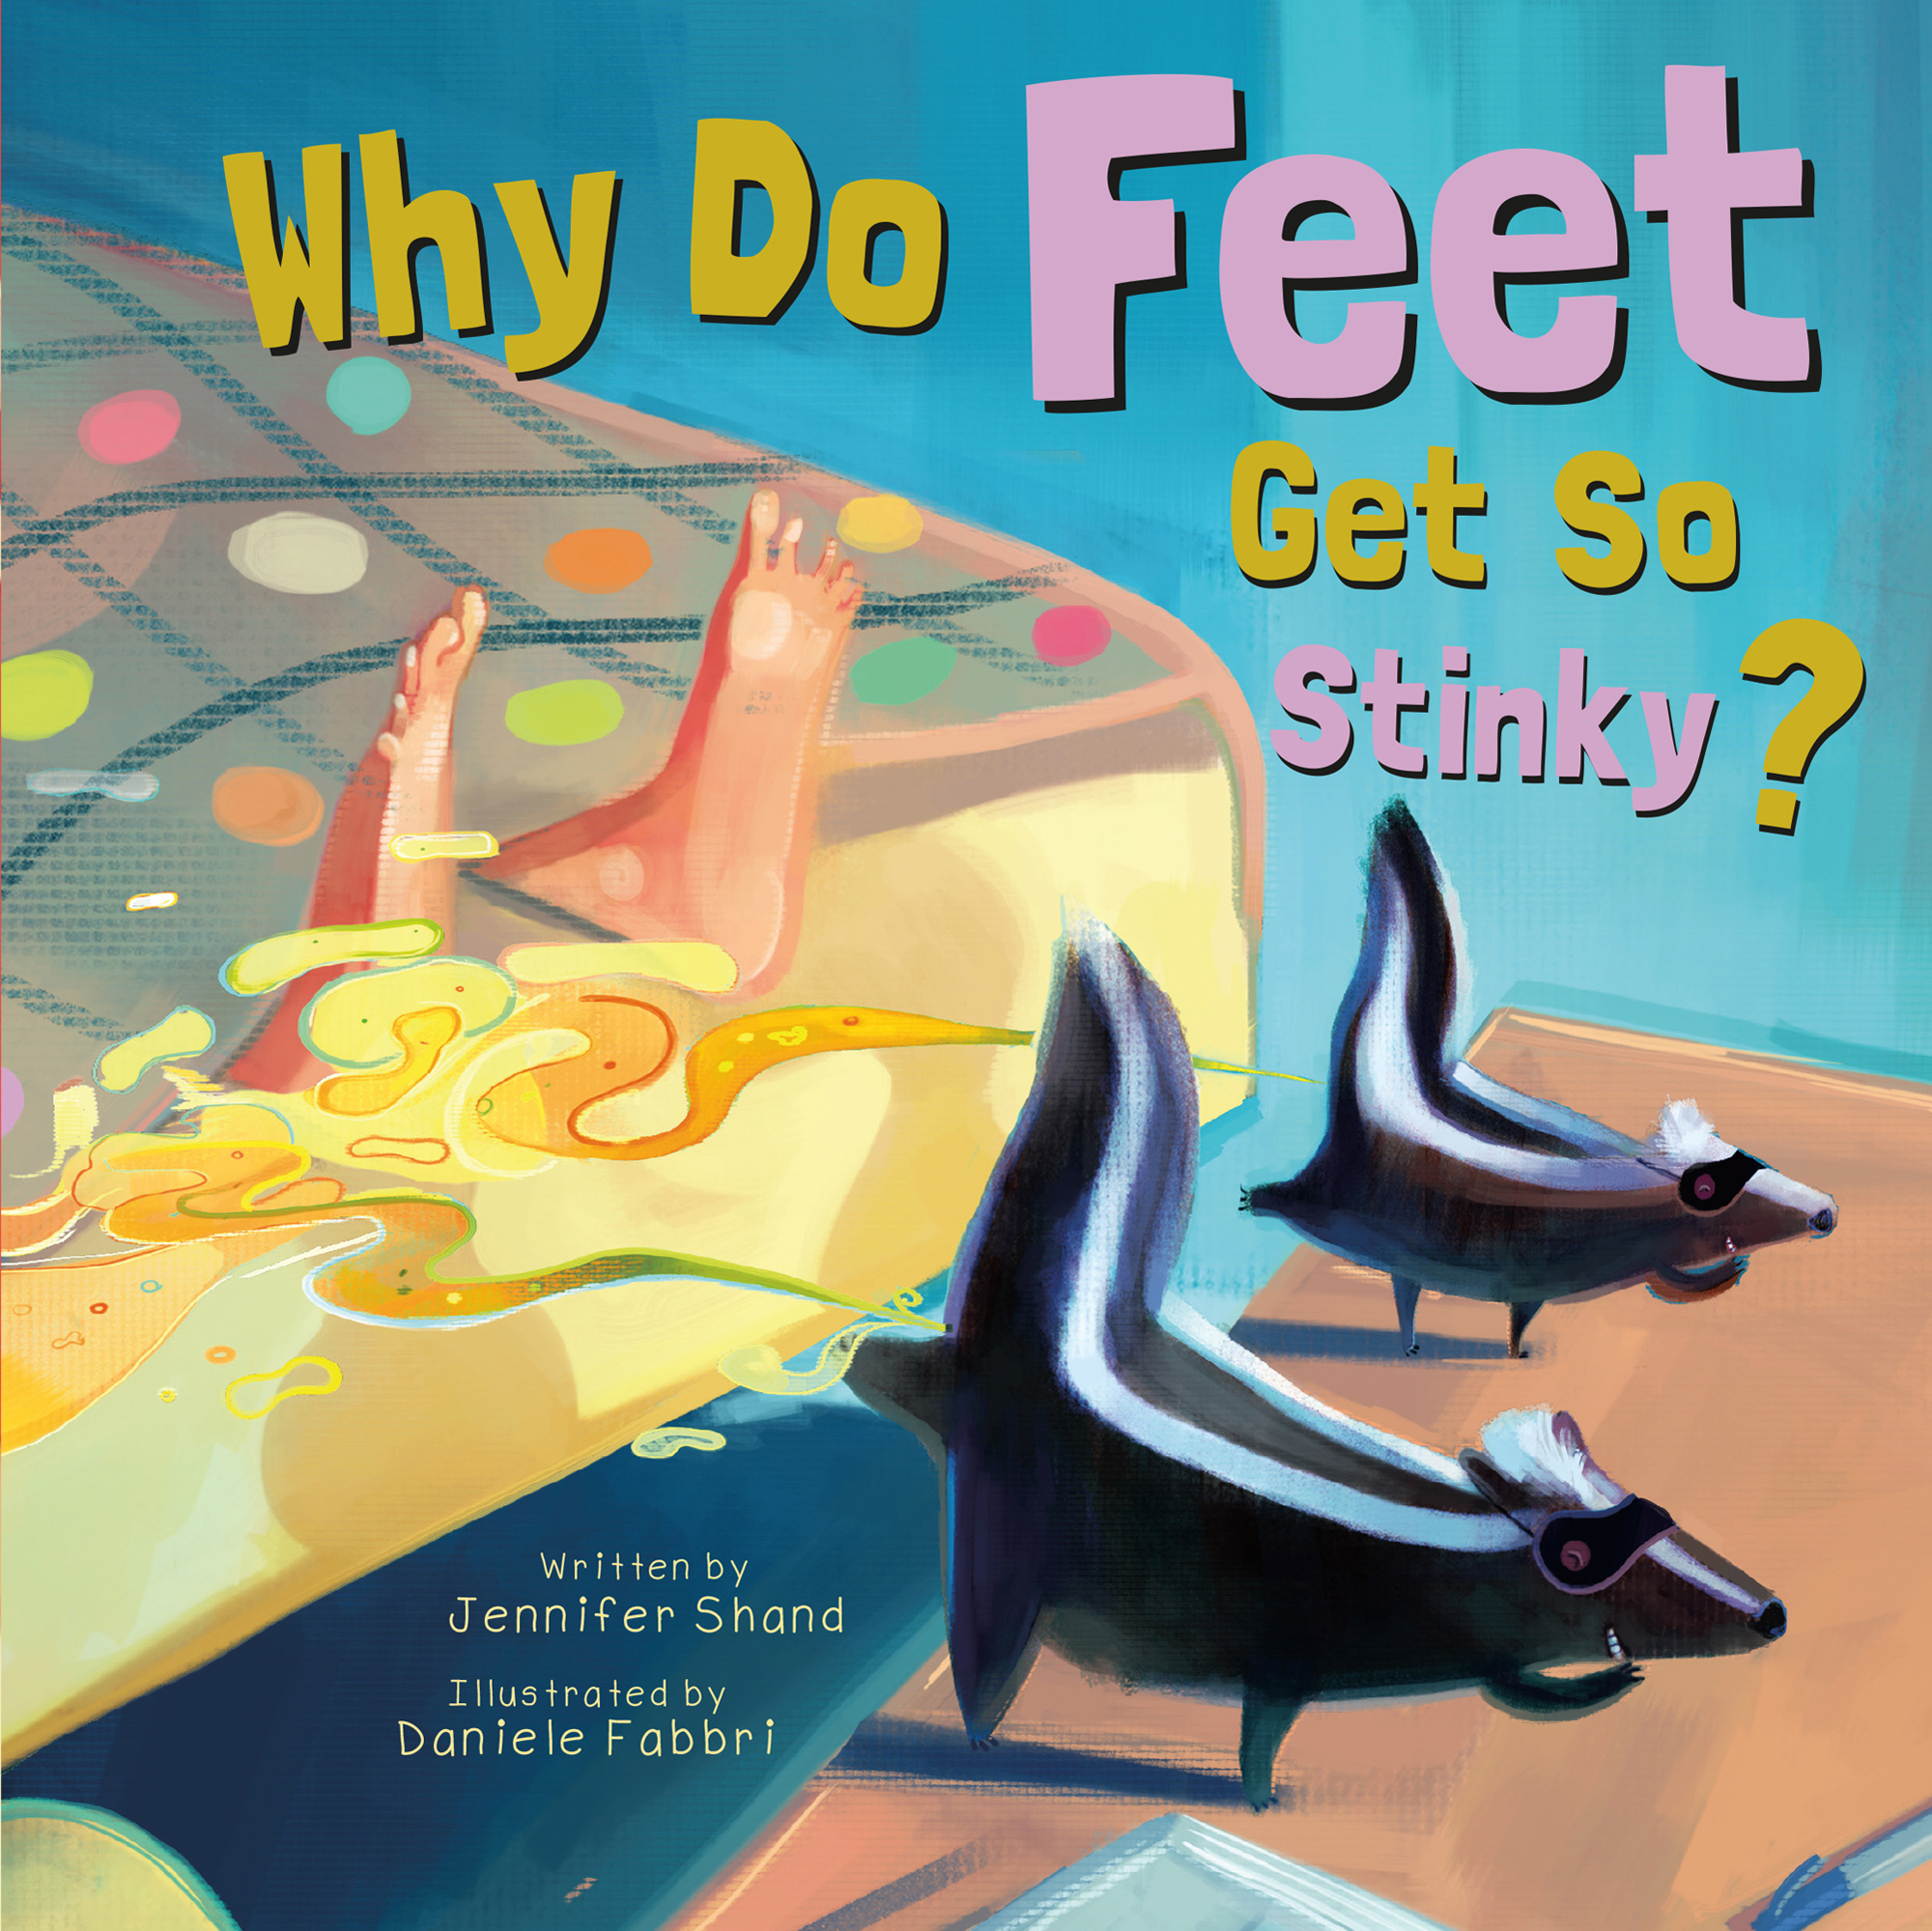 Why Do Feet Get So Stinky?